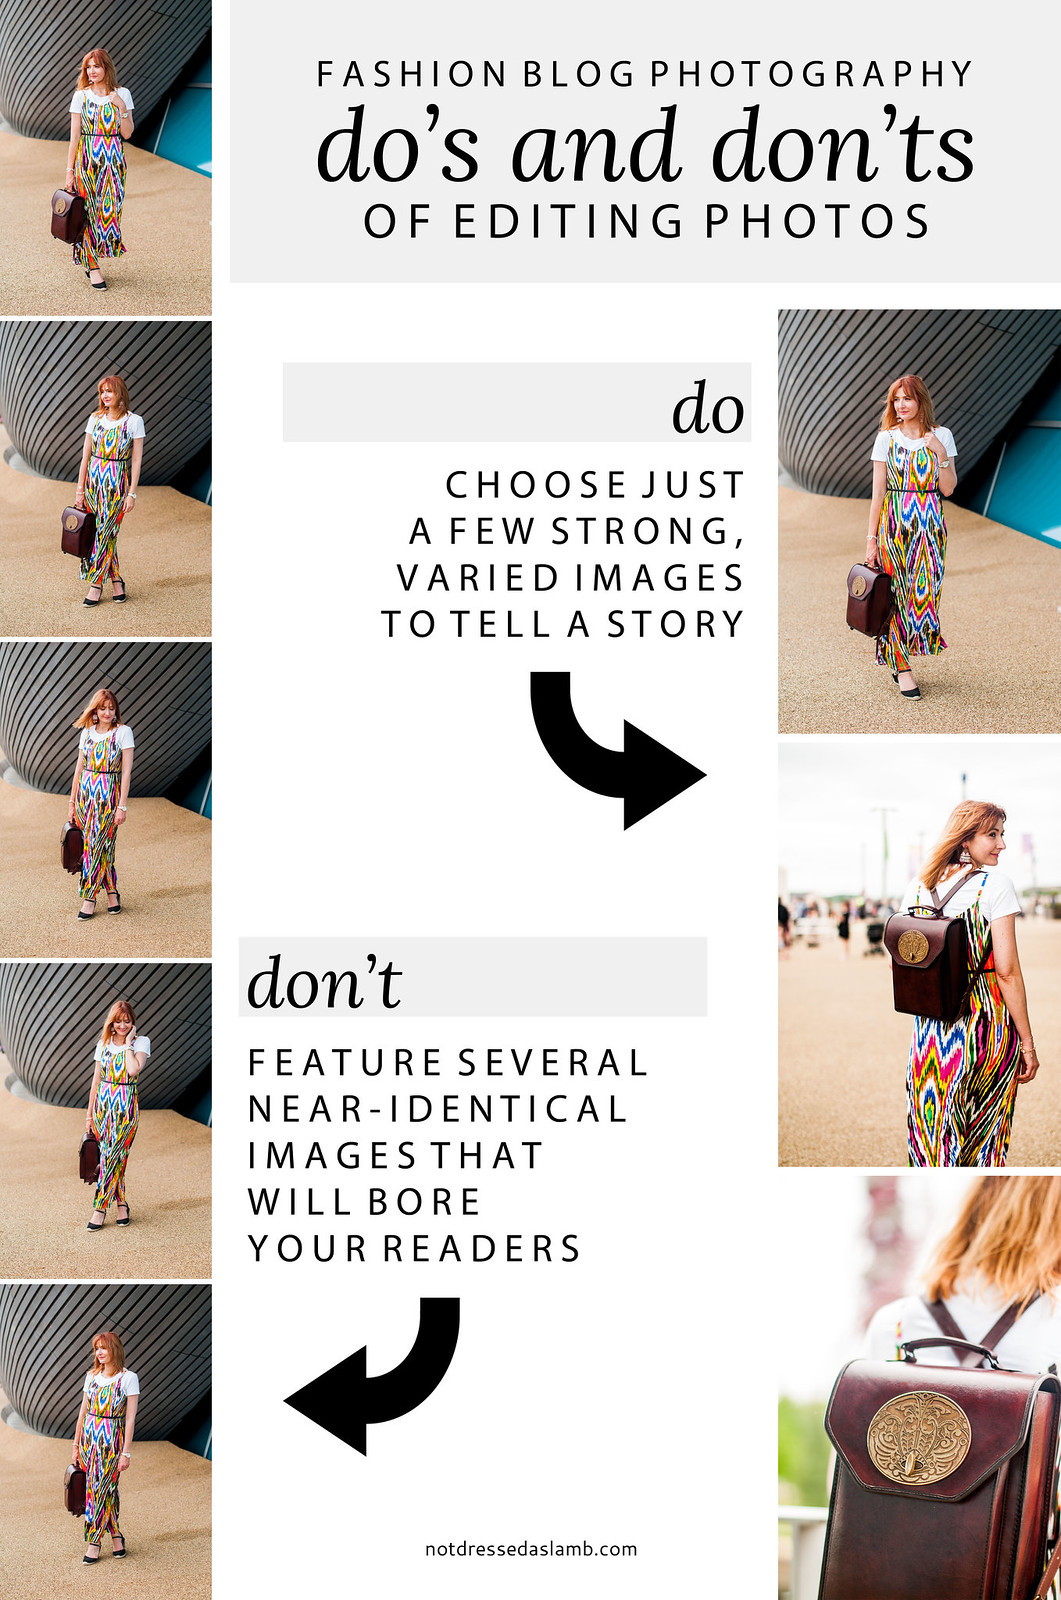 6 Easy Ways to Improve Your Blog Photos (Part 2: Editing Tips) | #1 Be ruthless when editing